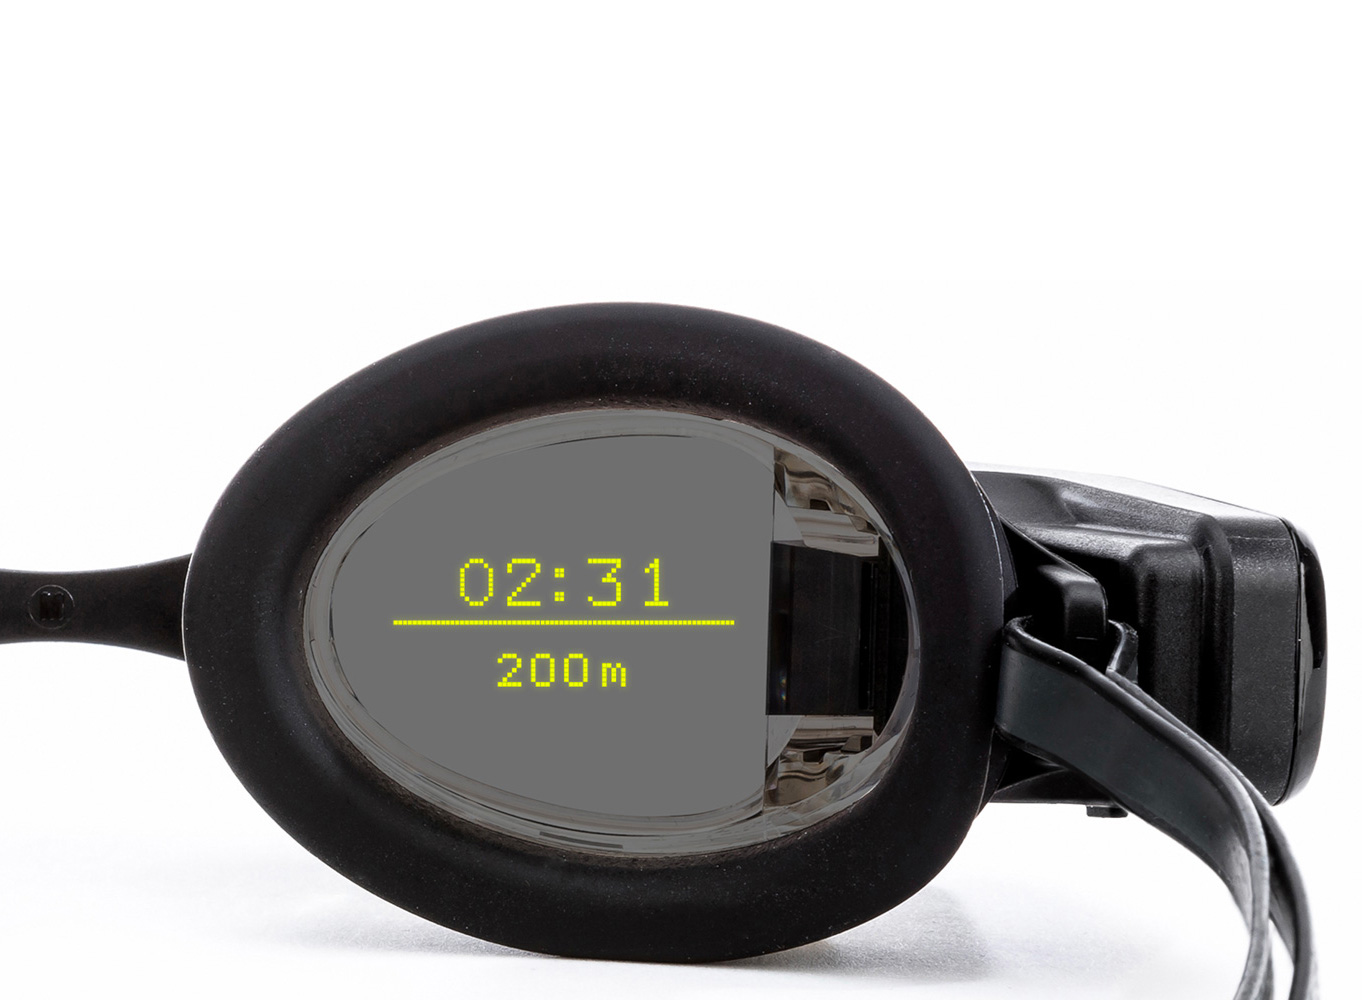 Form Goggles Introduce Swimming's First Smart Display at werd.com